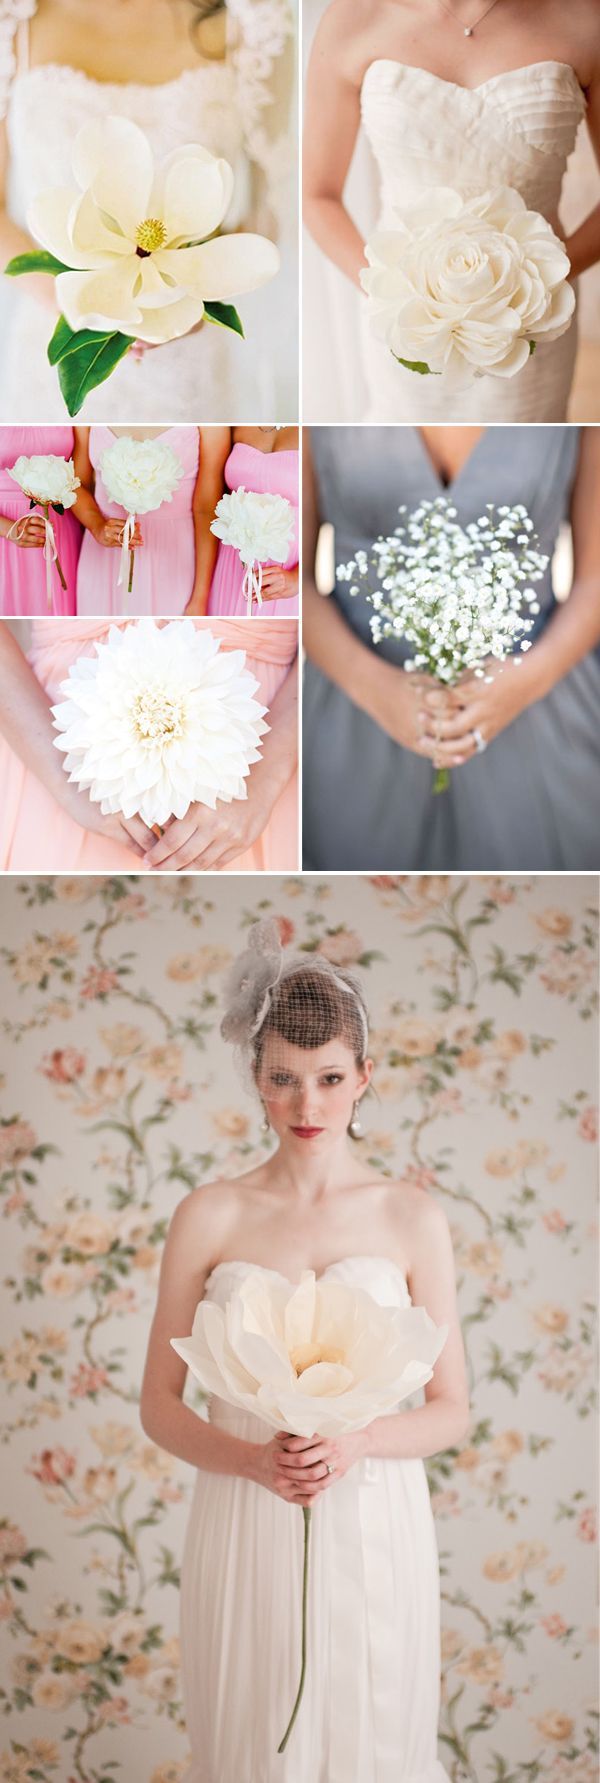 Praise Wedding » Wedding Inspiration and Planning » 15 Unique Single Bloom Bouquets